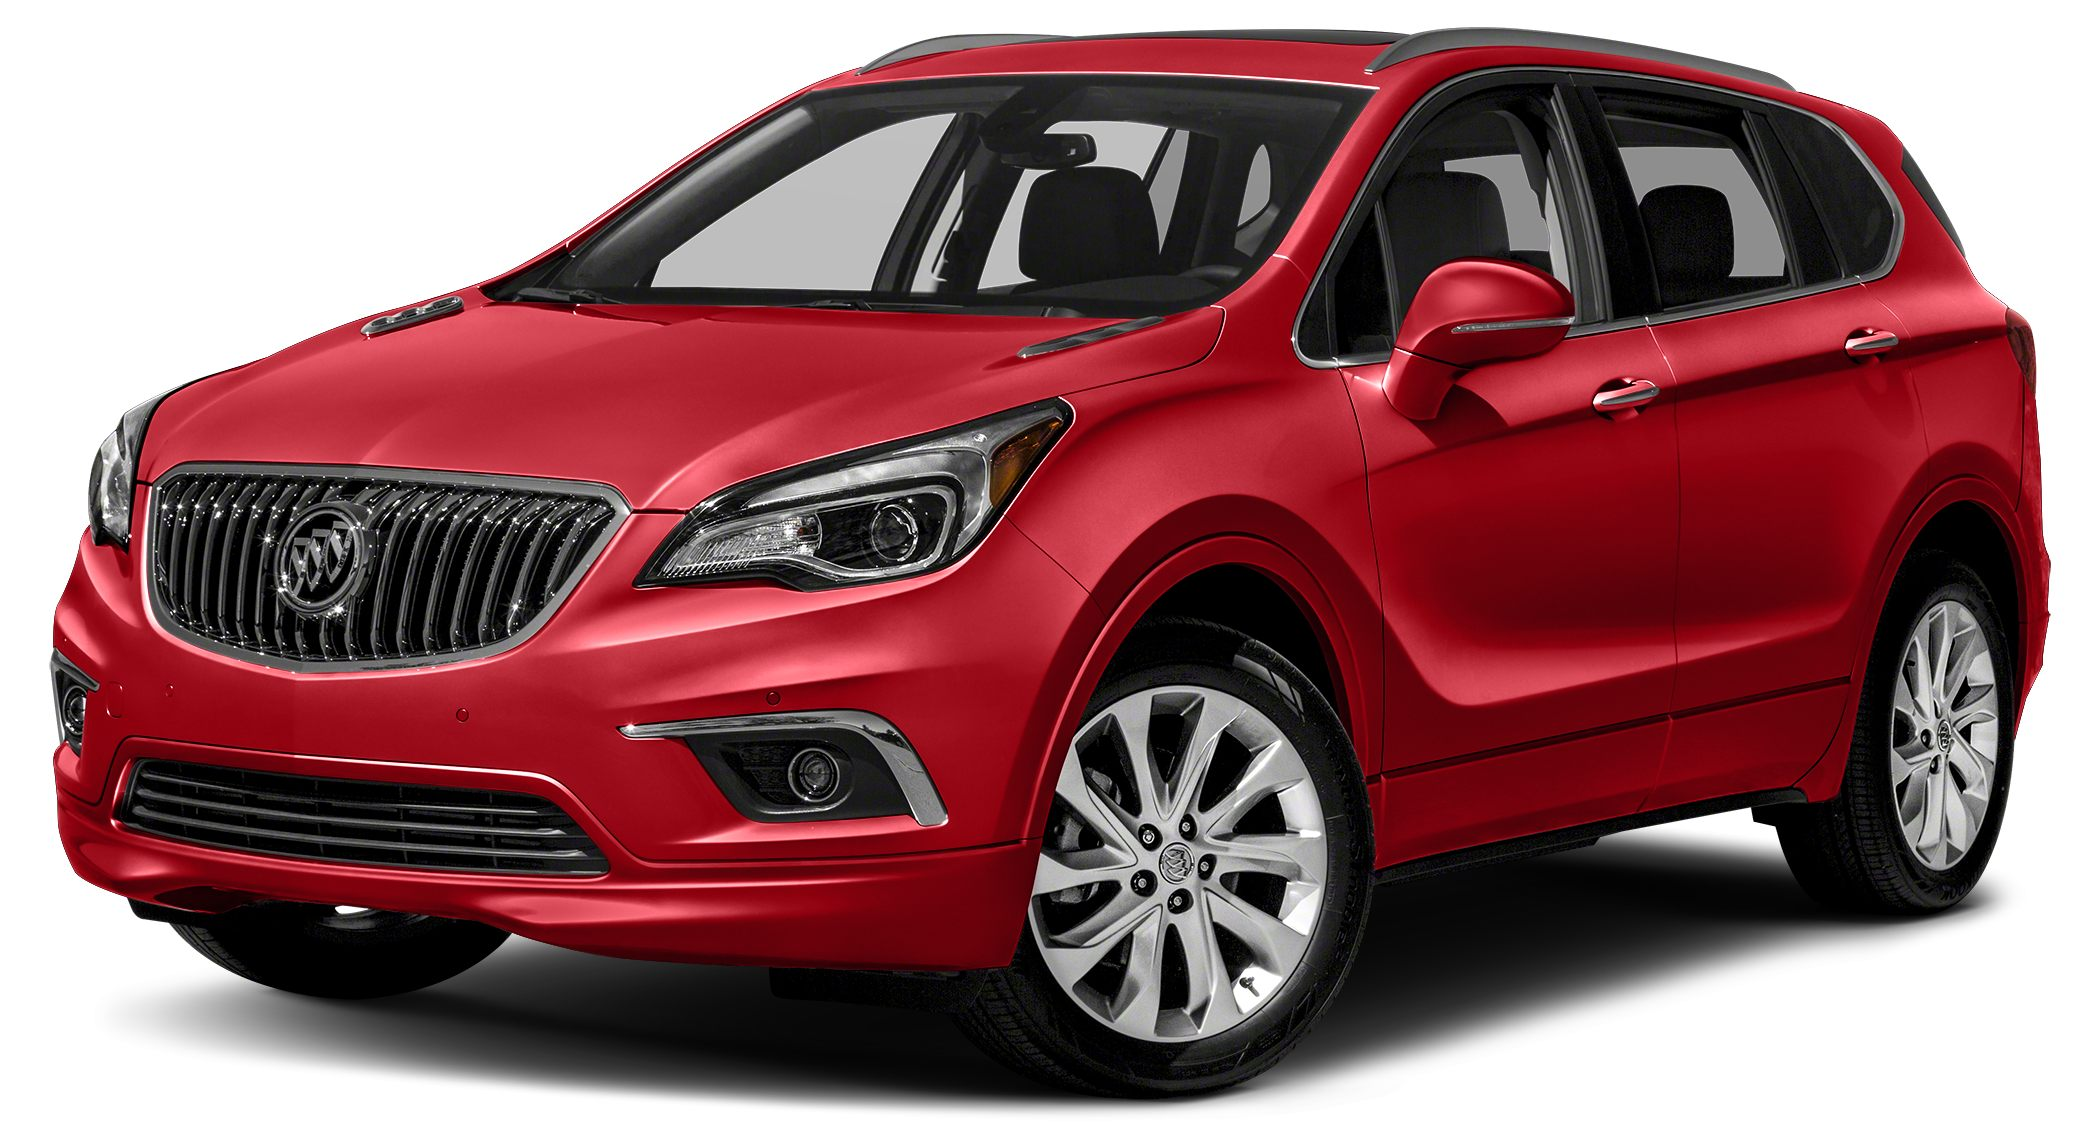 2018 Buick Envision Premium I For a smoother ride opt for this 2018 Buick Envision Premium with a